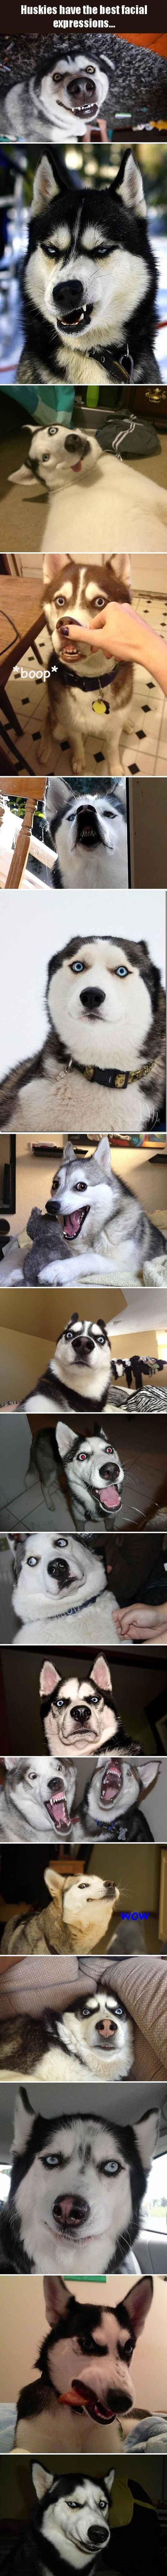 7.19.16 - Huskies Have the Best Facial Expressions